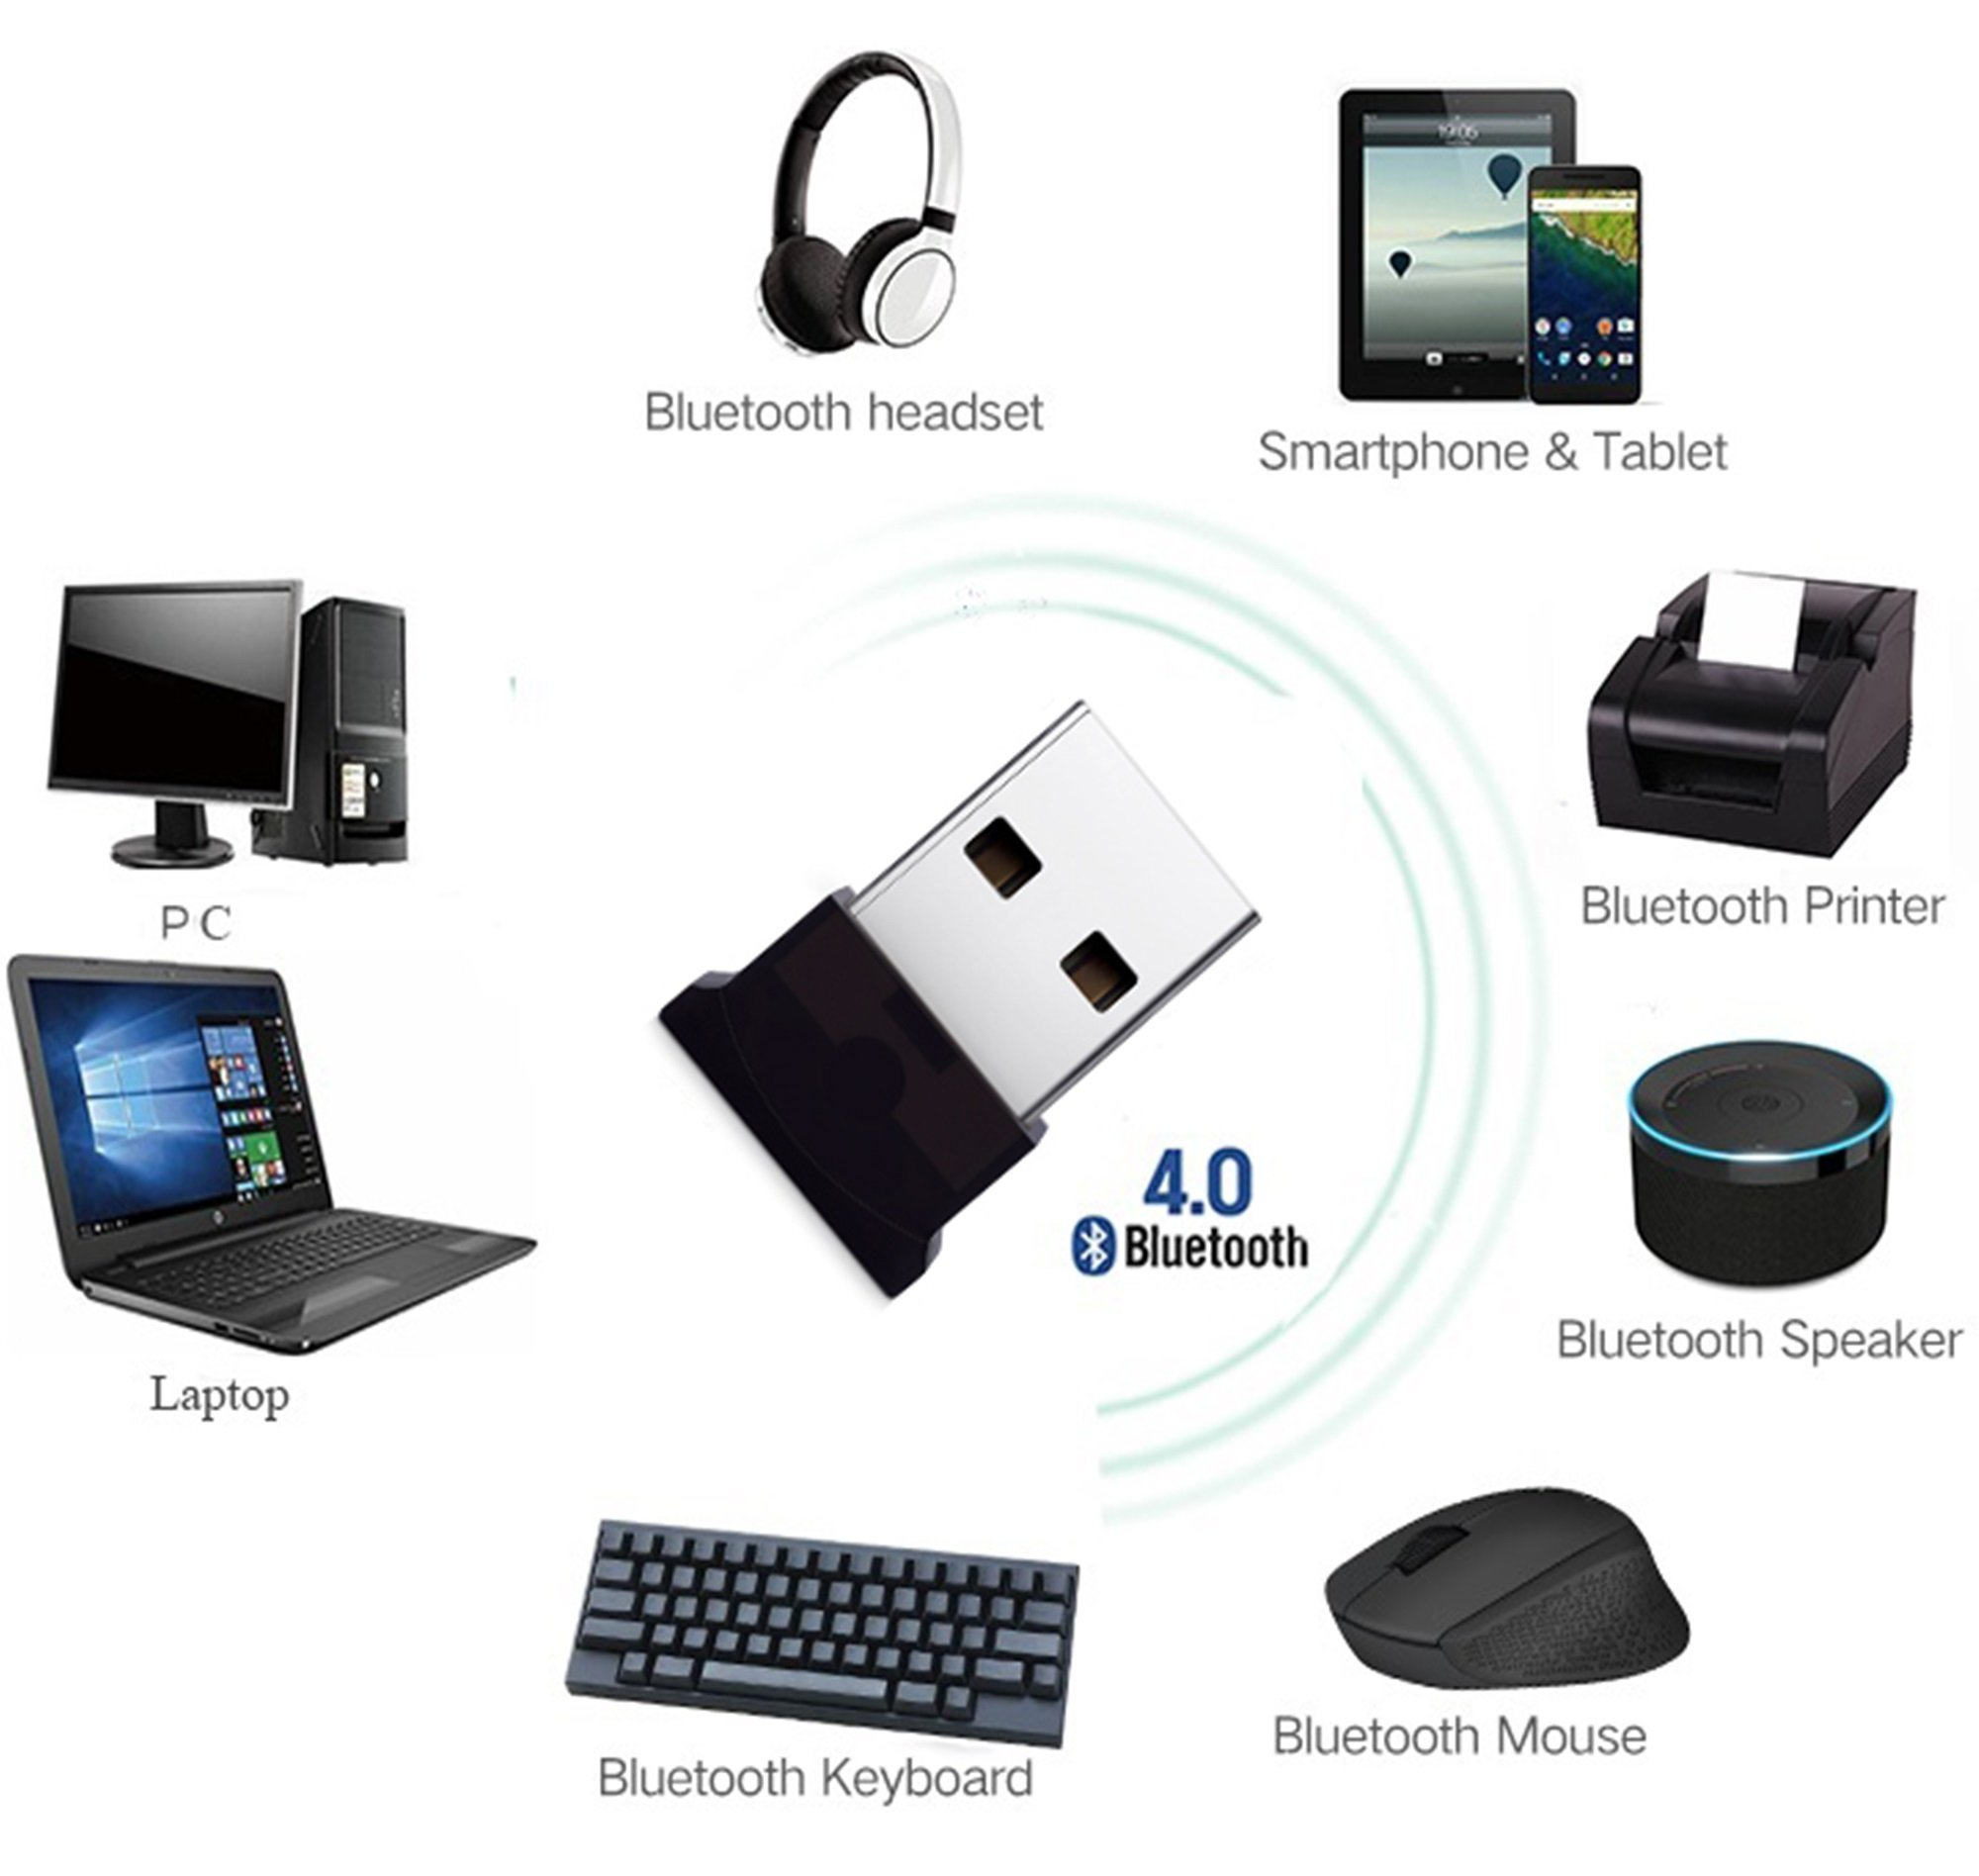 Bluetooth USB Adapter, 4.0 Bluetooth Low Energy 2.4Ghz Range Wireless USB Dongle Adapter for PC, Windows 10/8.1/8/7, Vista/XP by HIGHEVER (Image #4)